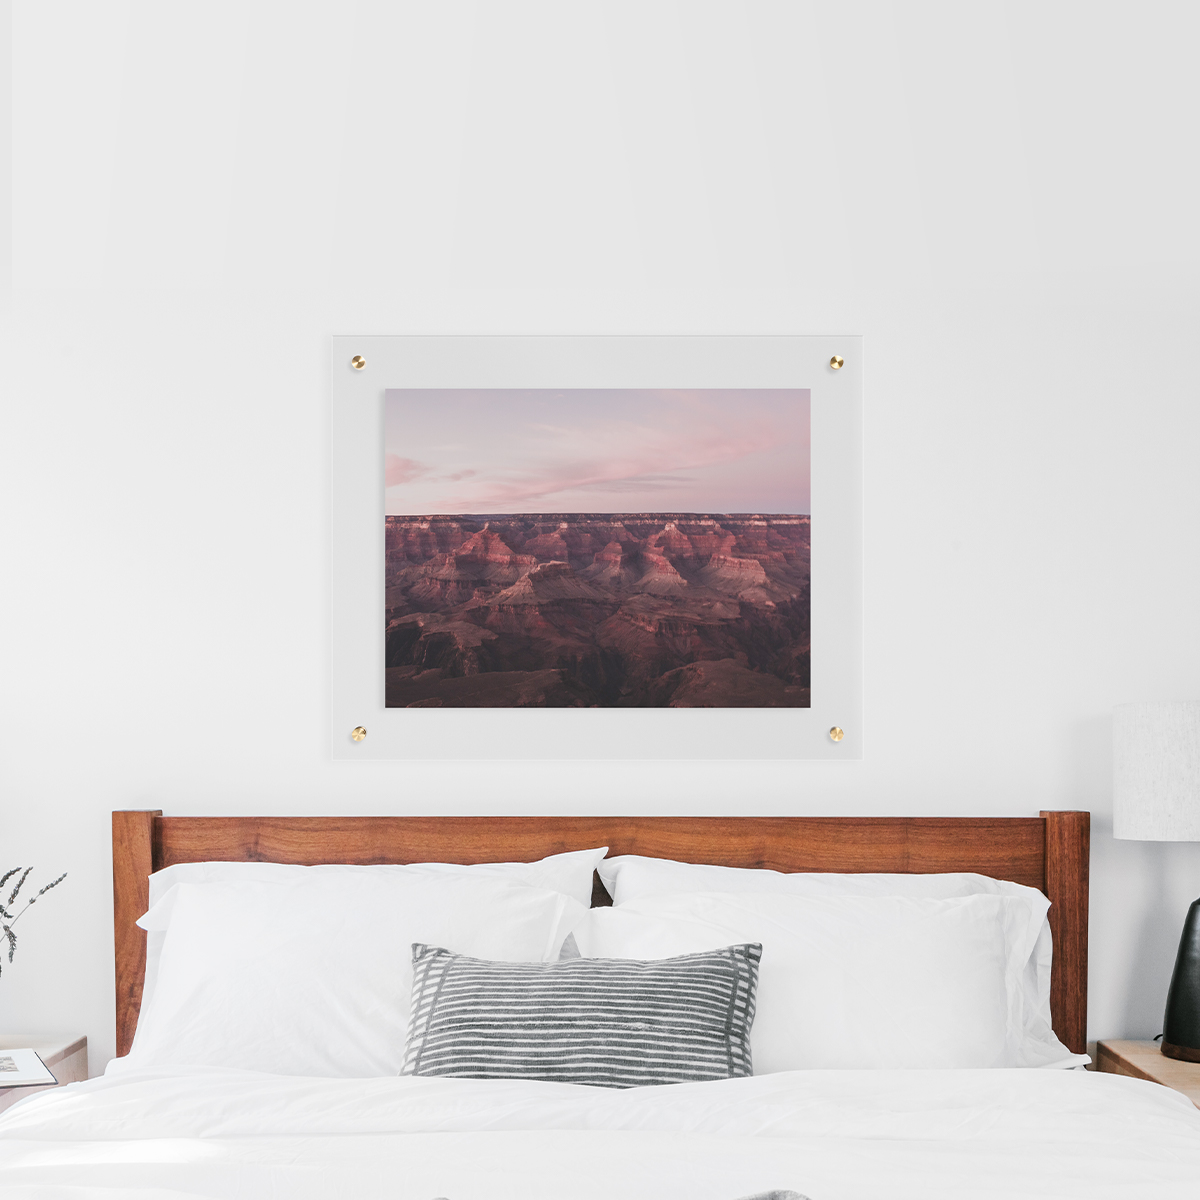 Floating frame with desert landscape hanging above bed with white bedspread